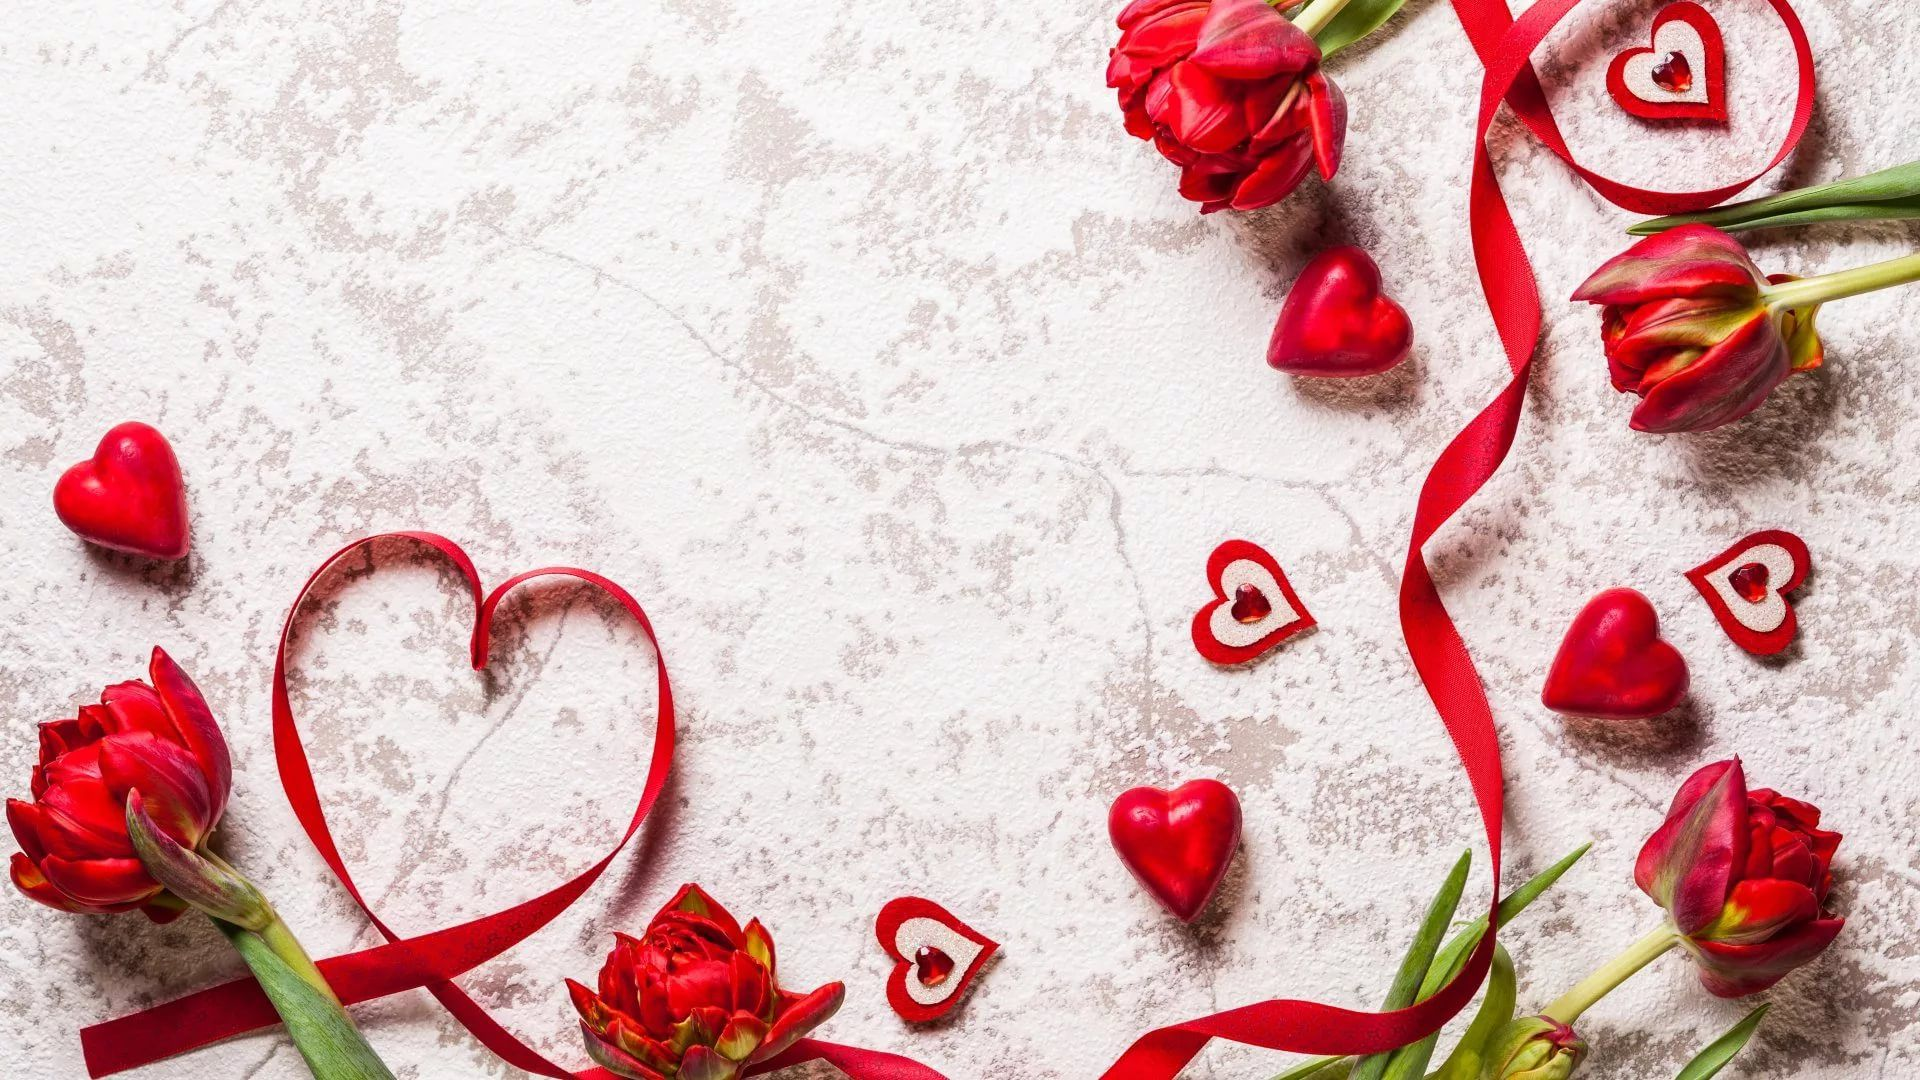 Valentine Screensaver wallpaper and themes